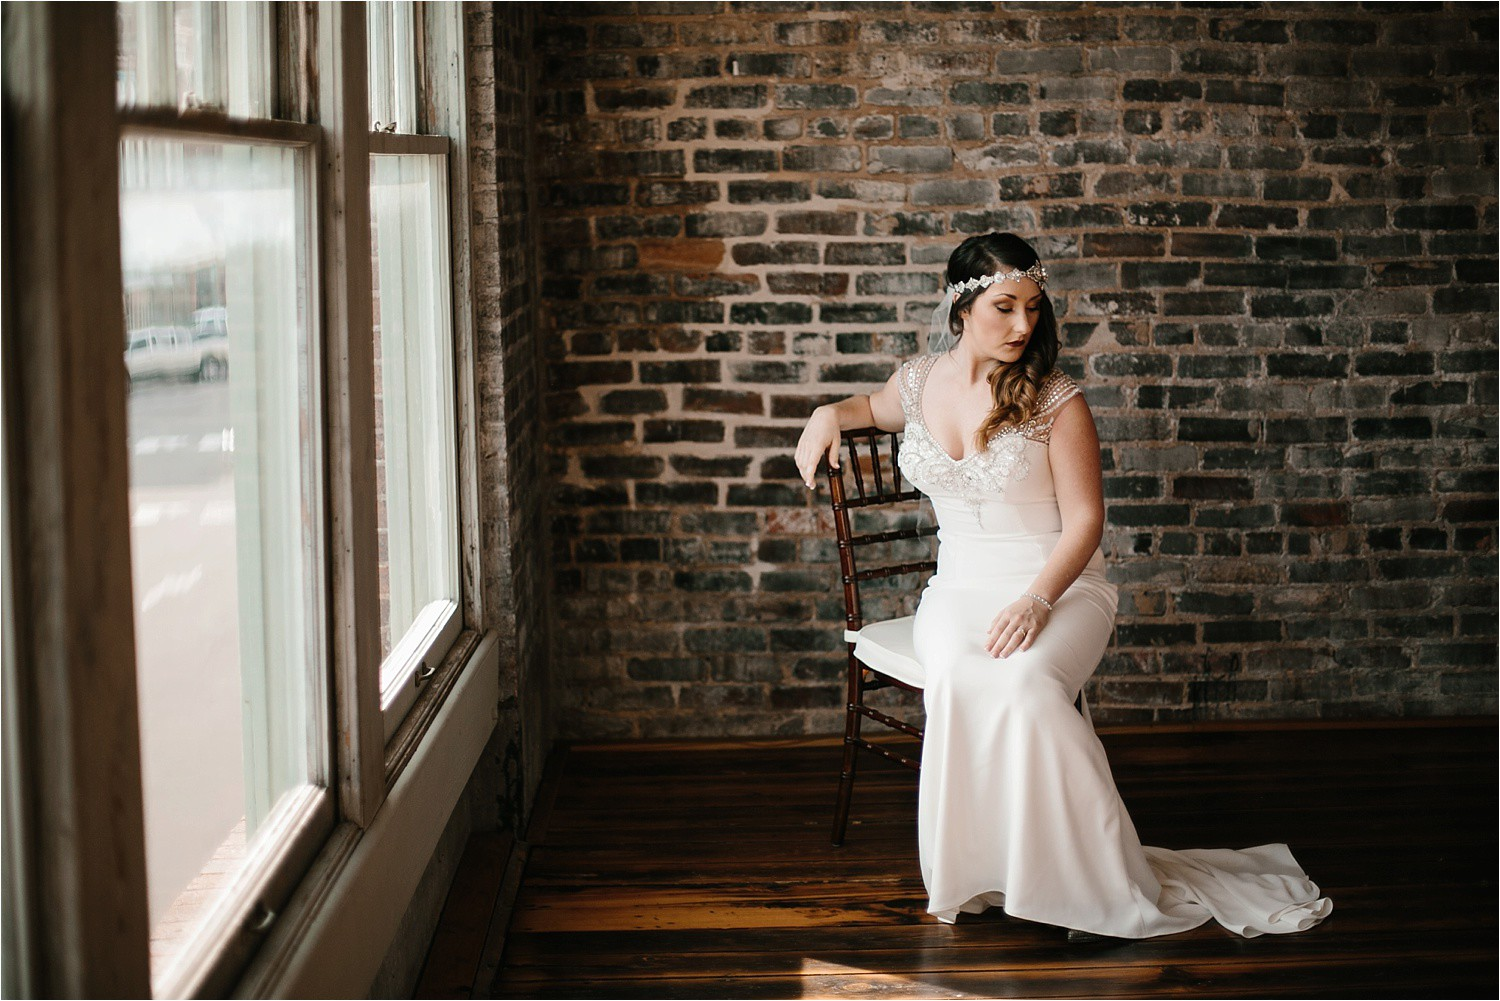 whittney-drew-__-an-intimate-wine-and-navy-wedding-in-an-industrial-venue-at-loft-123-in-paris-tx-by-north-texas-wedding-photographer-rachel-meagan-photography-_-025